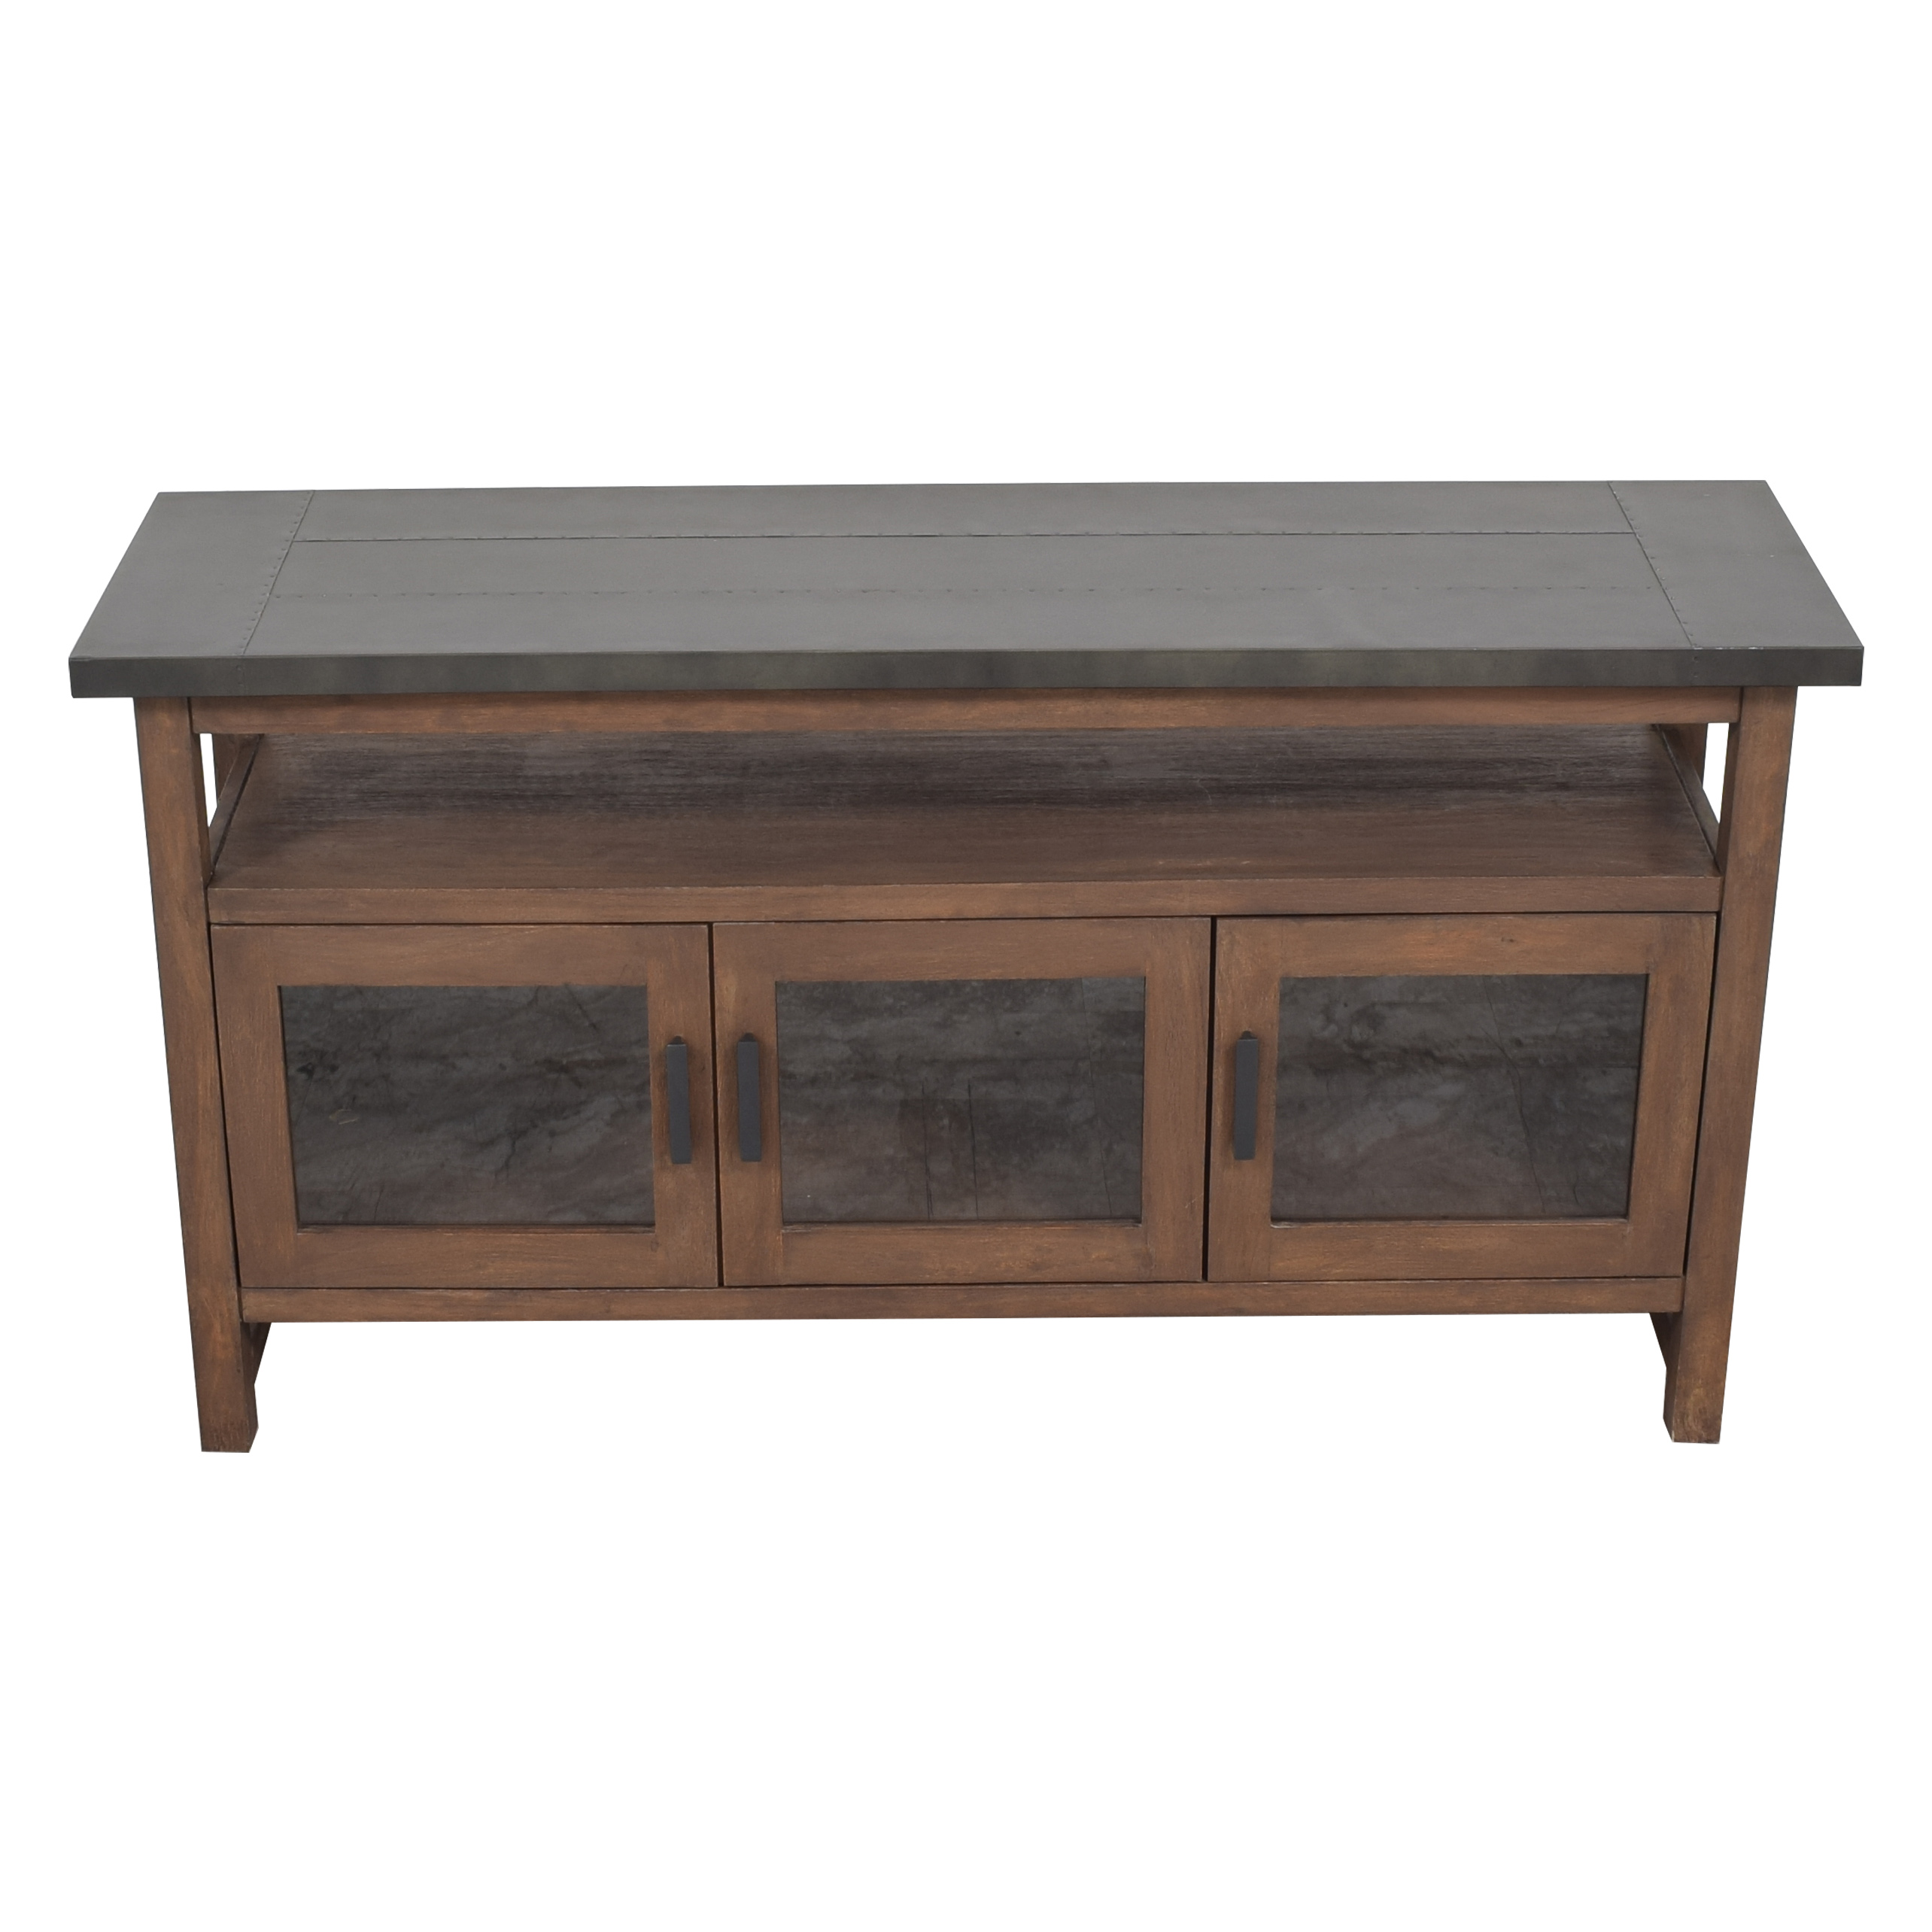 Crate & Barrel Crate & Barrel Galvin Sideboard discount